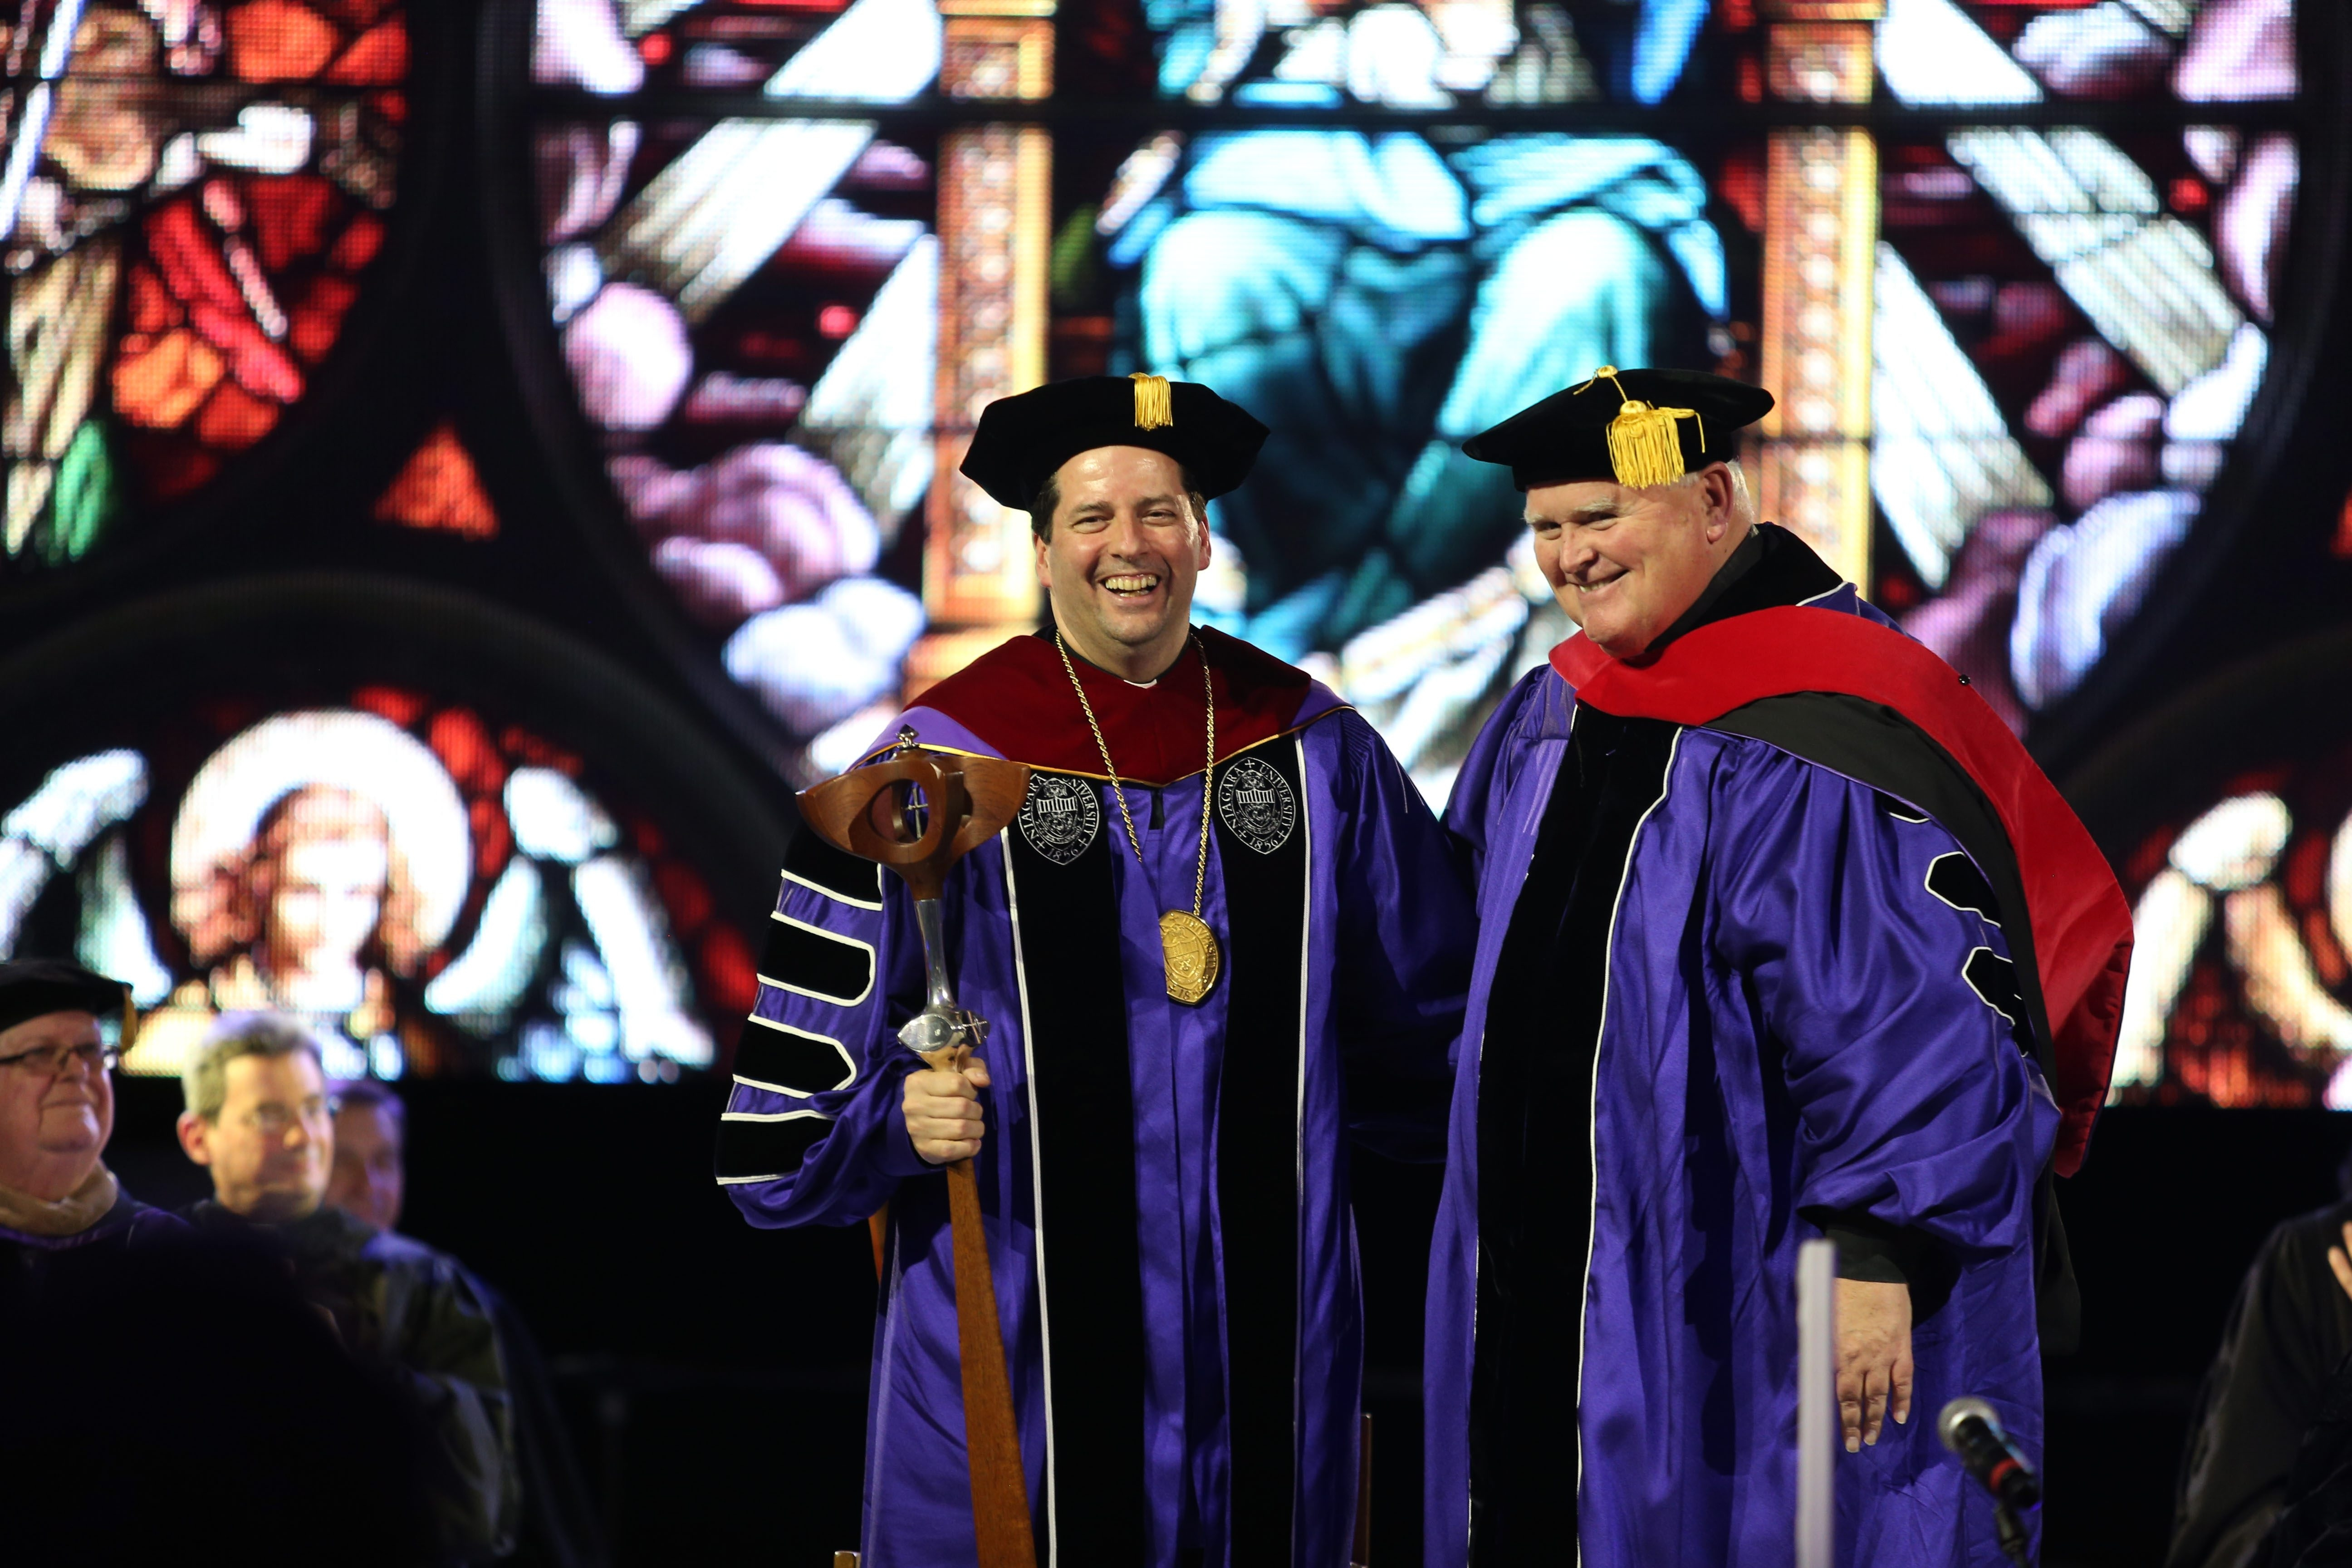 The Rev. Michael J. Carroll, right, smiles along with the Rev. James J. Maher after presenting him the mace during his inauguration as the 26th president of Niagara University in the Gallagher Center on the school's Lewiston campus Friday.